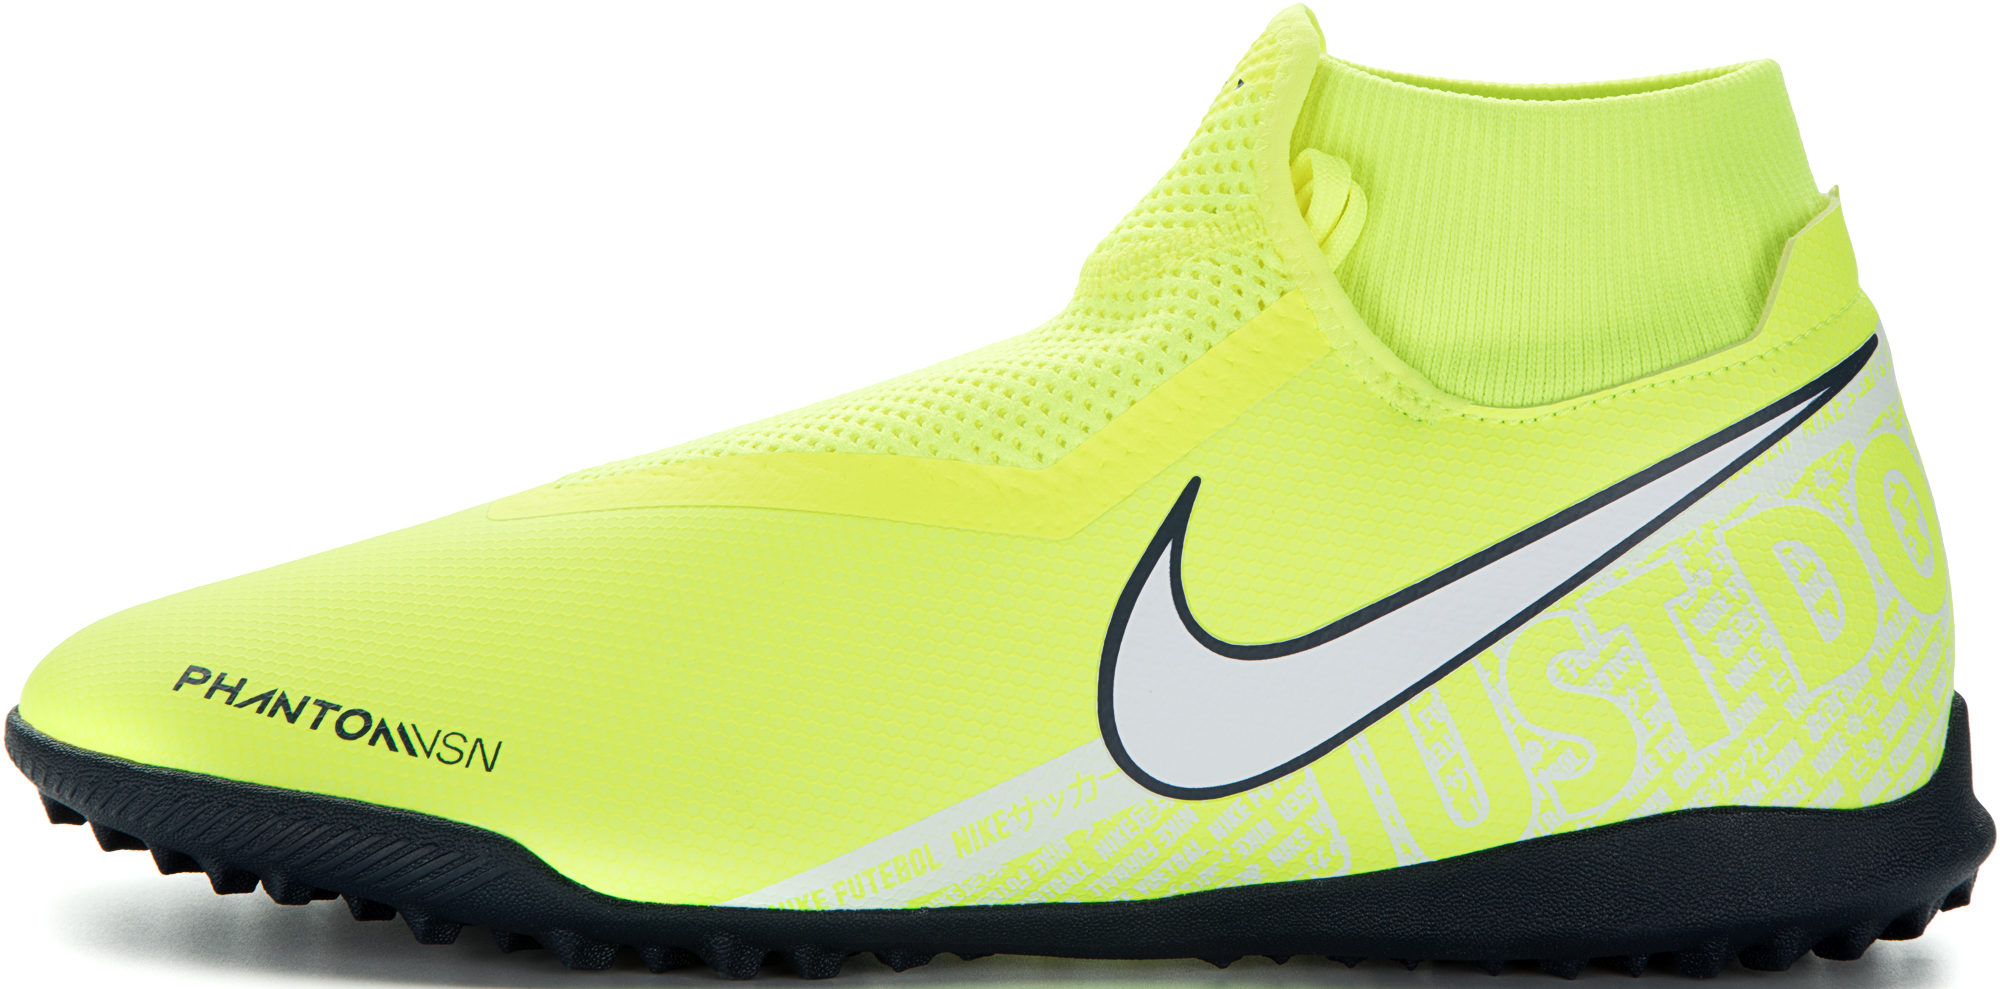 Nike Бутсы мужские Phantom Vision Academy Dynamic Fit, размер 45